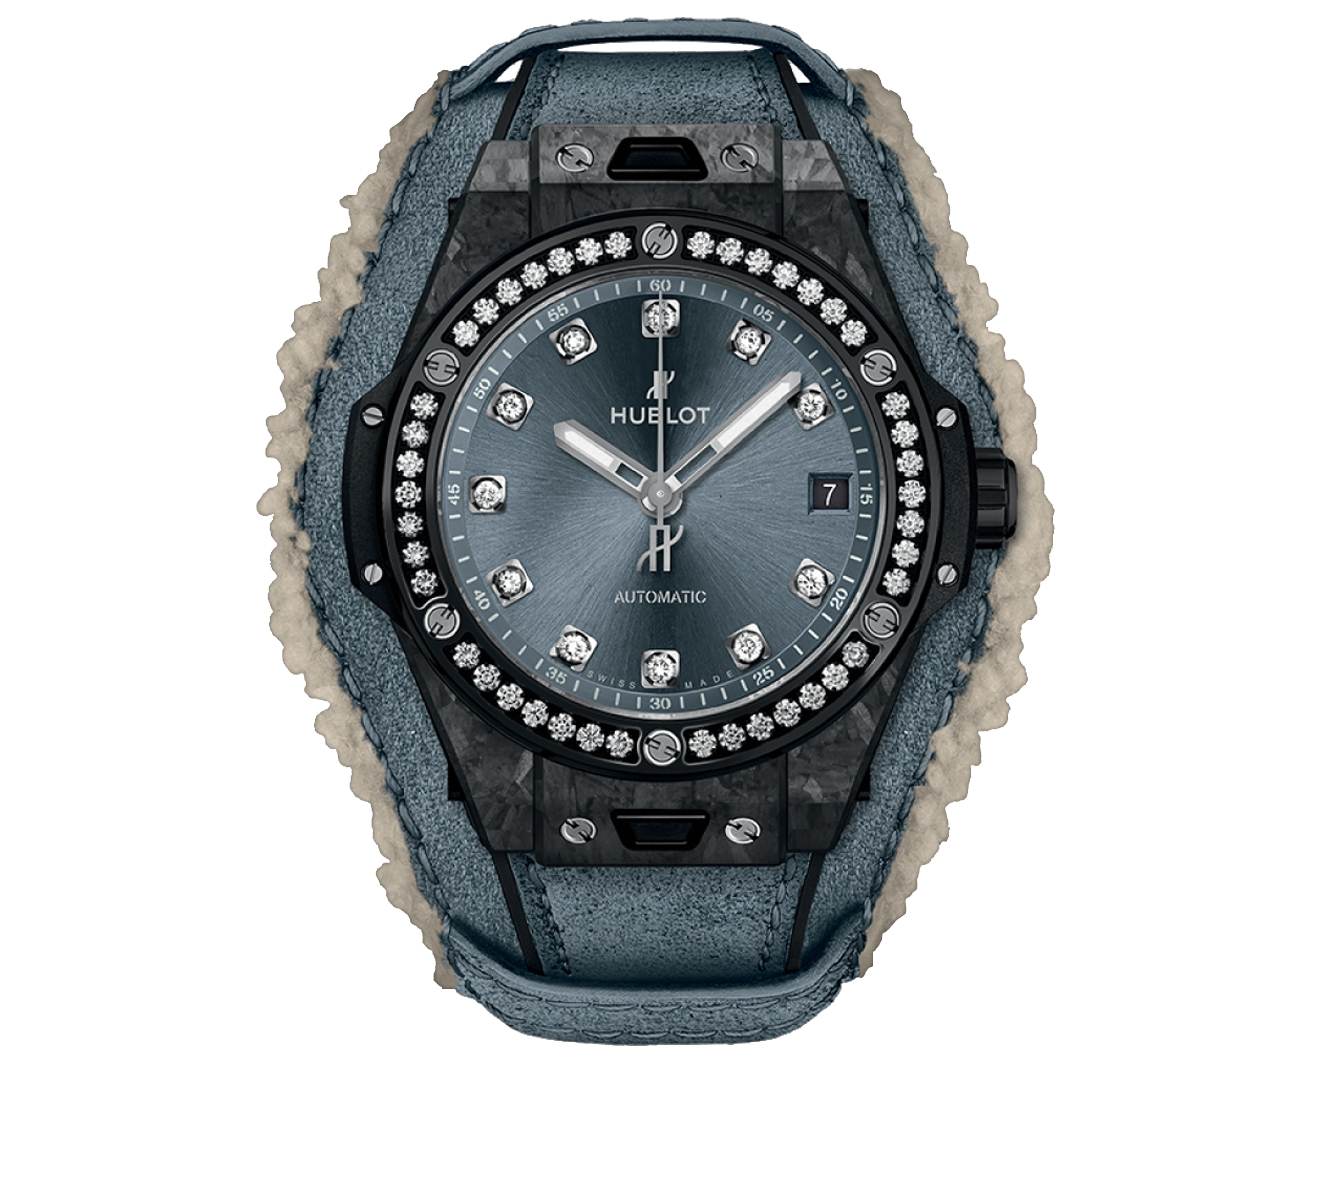 Часы One Click Frosted Carbon Diamonds HUBLOT Big Bang 465.QK.7170.VR.1204.ALP18 - фото 1 – Mercury